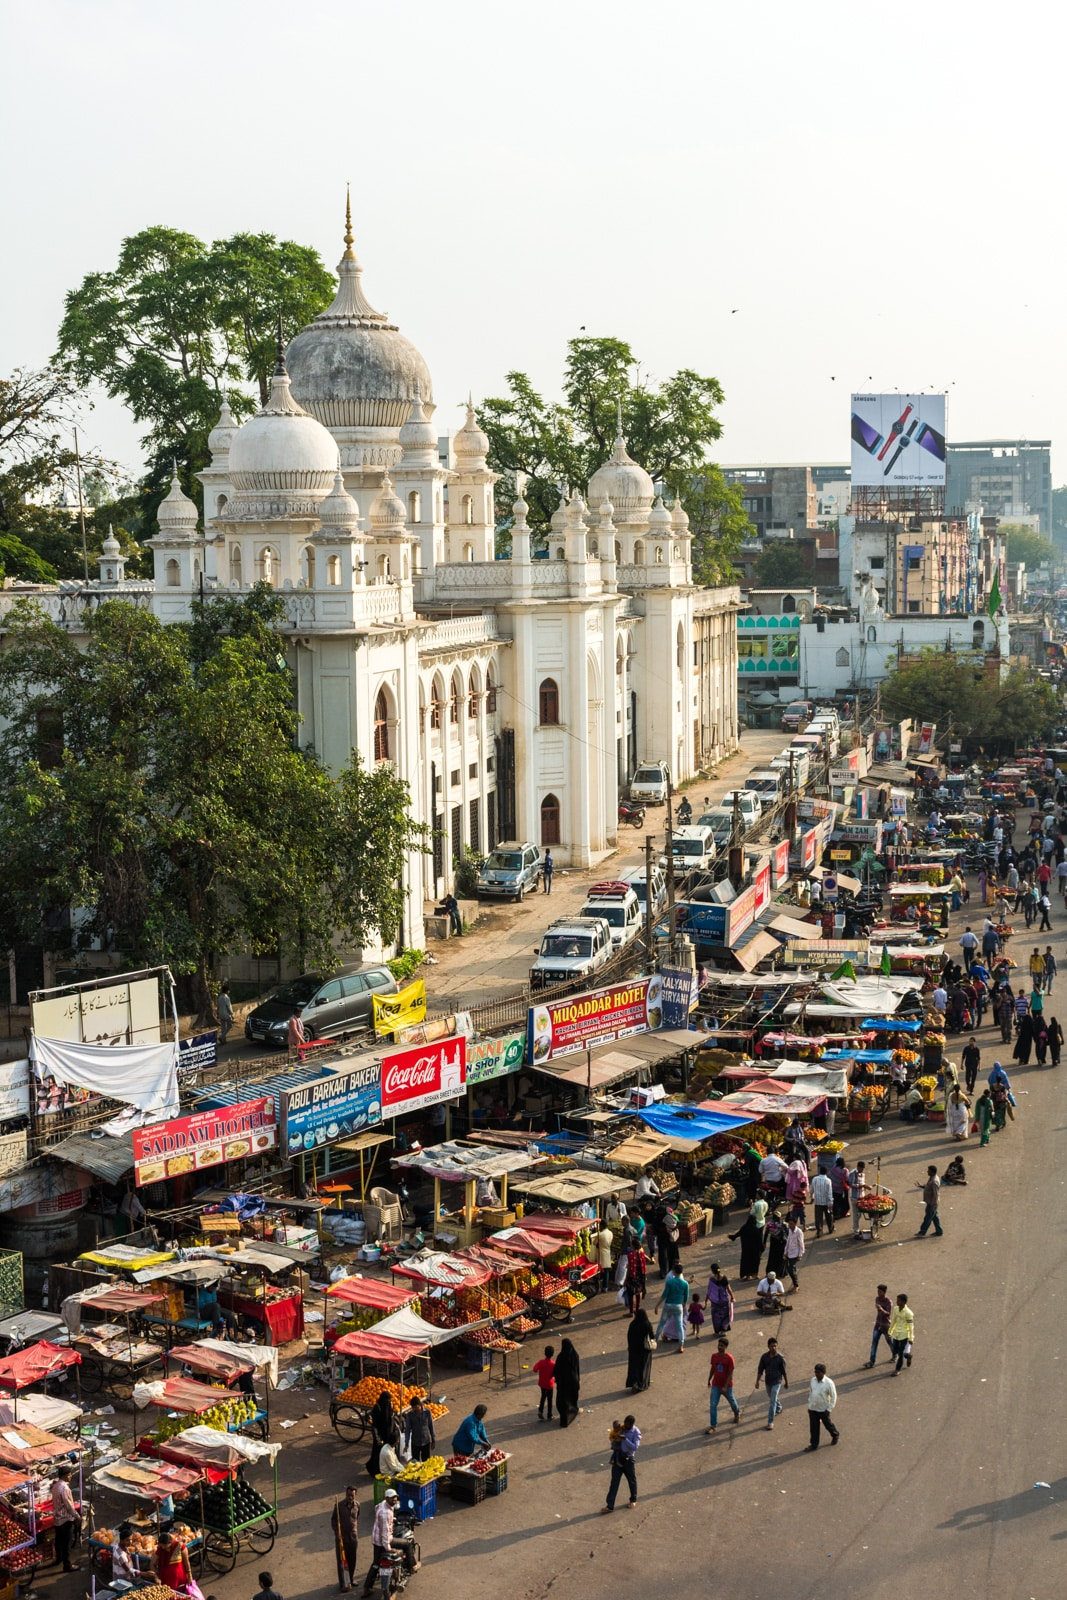 A view of the buzzing market around Hyderabad, India's old city from the top of the Charminar monument.